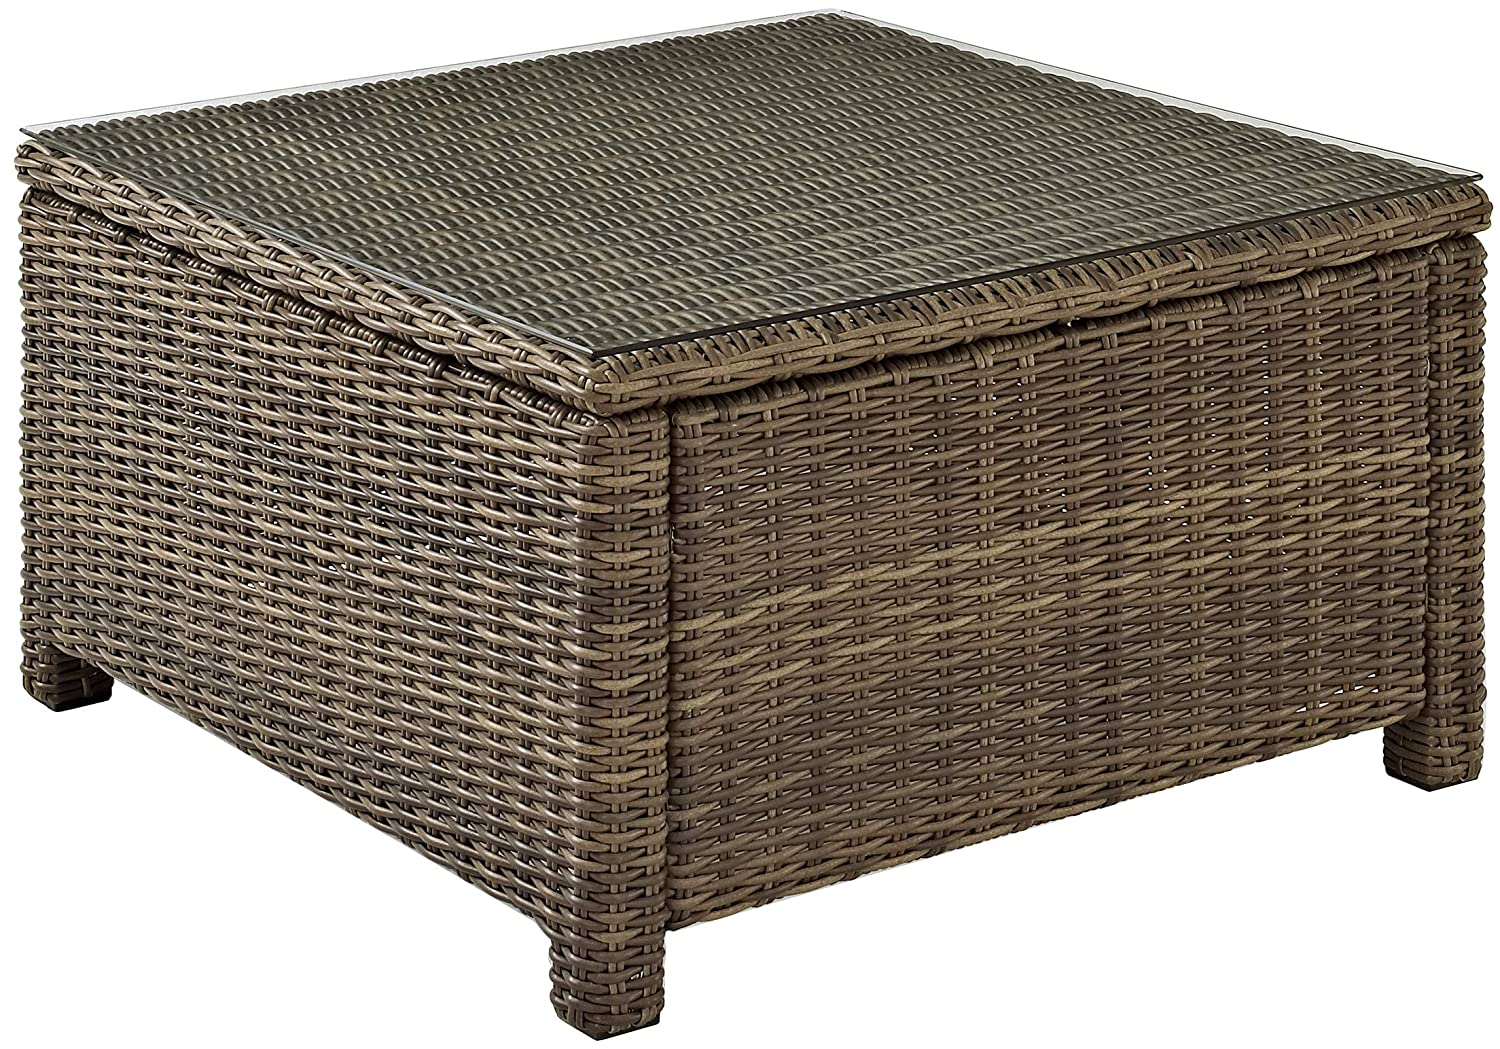 Crosley Furniture Bradenton Outdoor Wicker Sectional Coffee Table with Glass Top – Weathered Brown